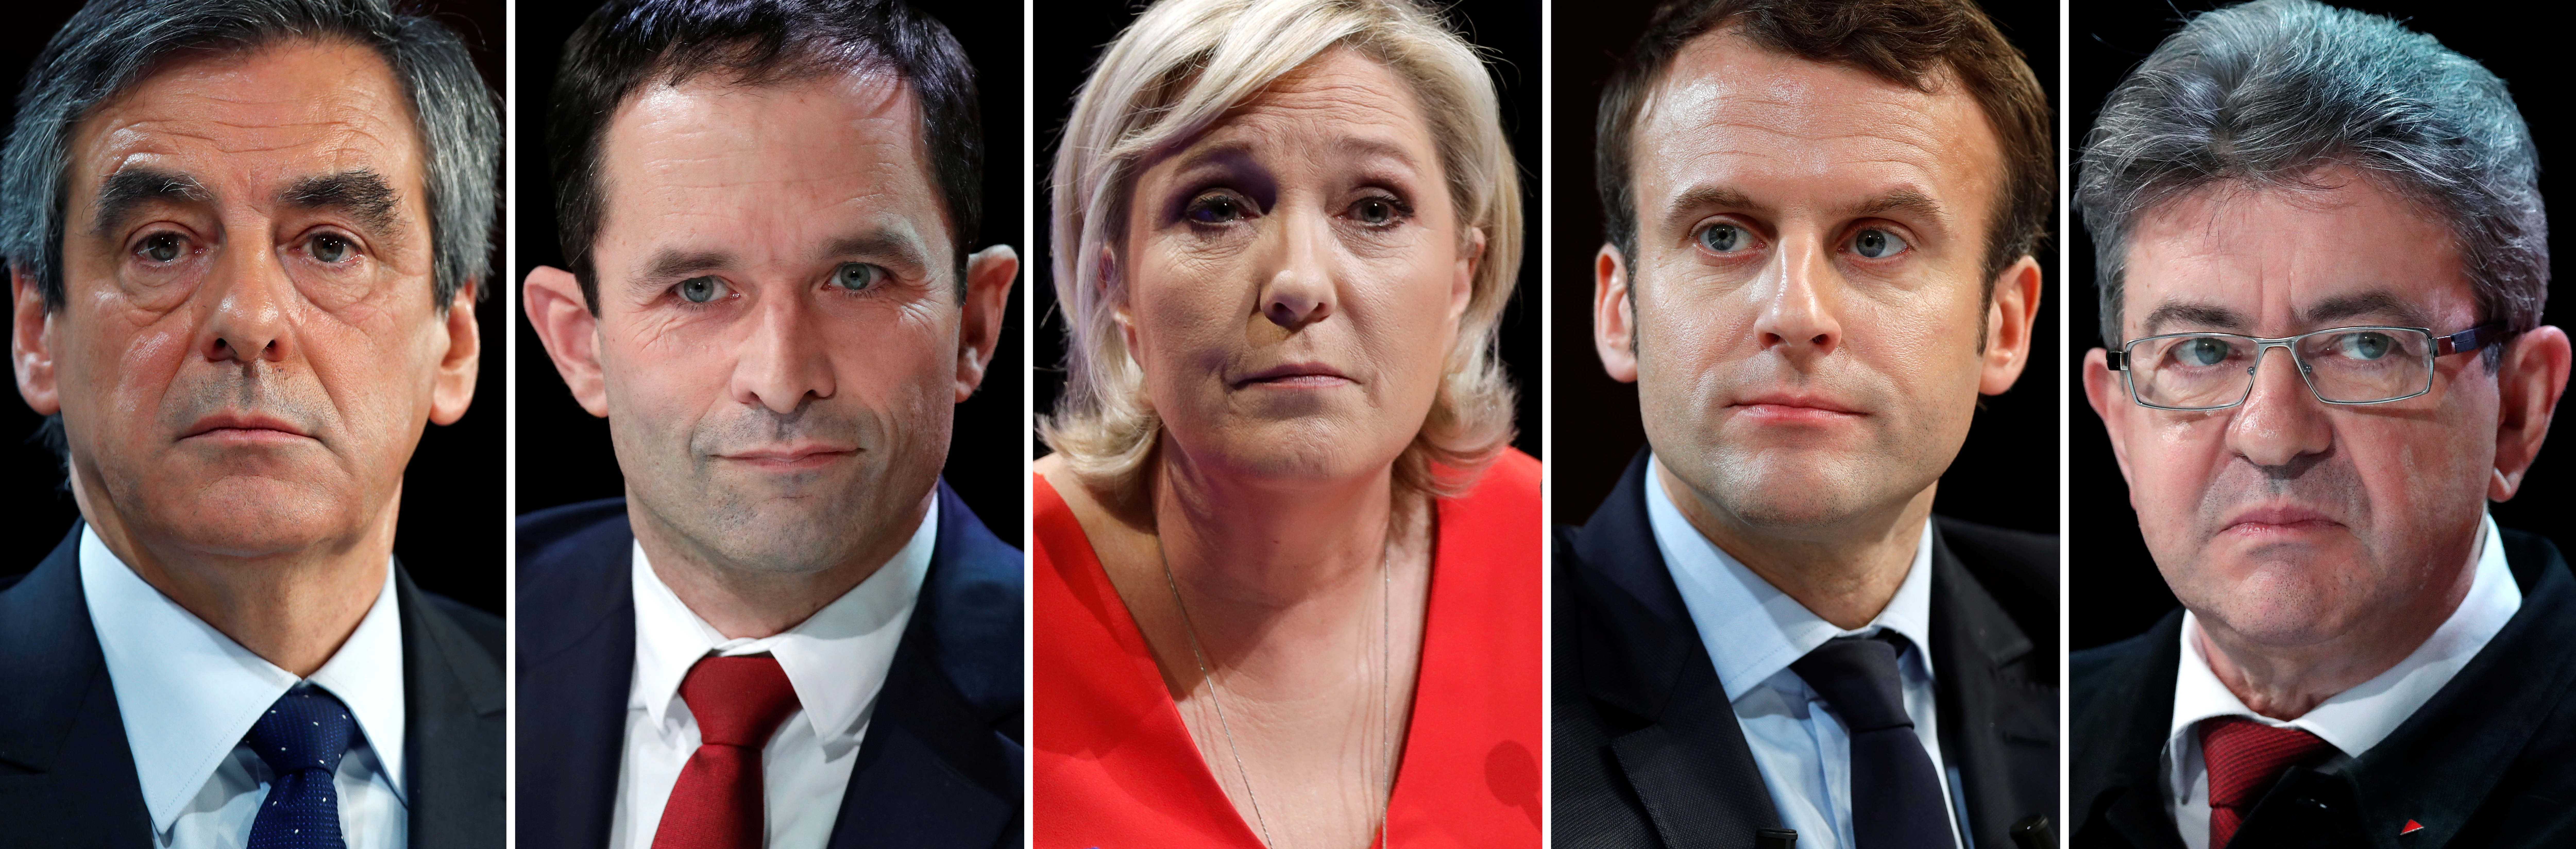 A combination picture shows five candidates for the French 2017 presidential election, Francois Fillon, the Republicans political party candidate, Benoit Hamon, French Socialist party candidate, Marine Le Pen, French National Front (FN) political party leader, Emmanuel Macron, head of the political movement En Marche ! (or Onwards !), Jean-Luc Melenchon, candidate of the French far-left Parti de Gauche, in Paris, France, March 17, 2017. REUTERS/Christian Hartmann - RTX31HOJ